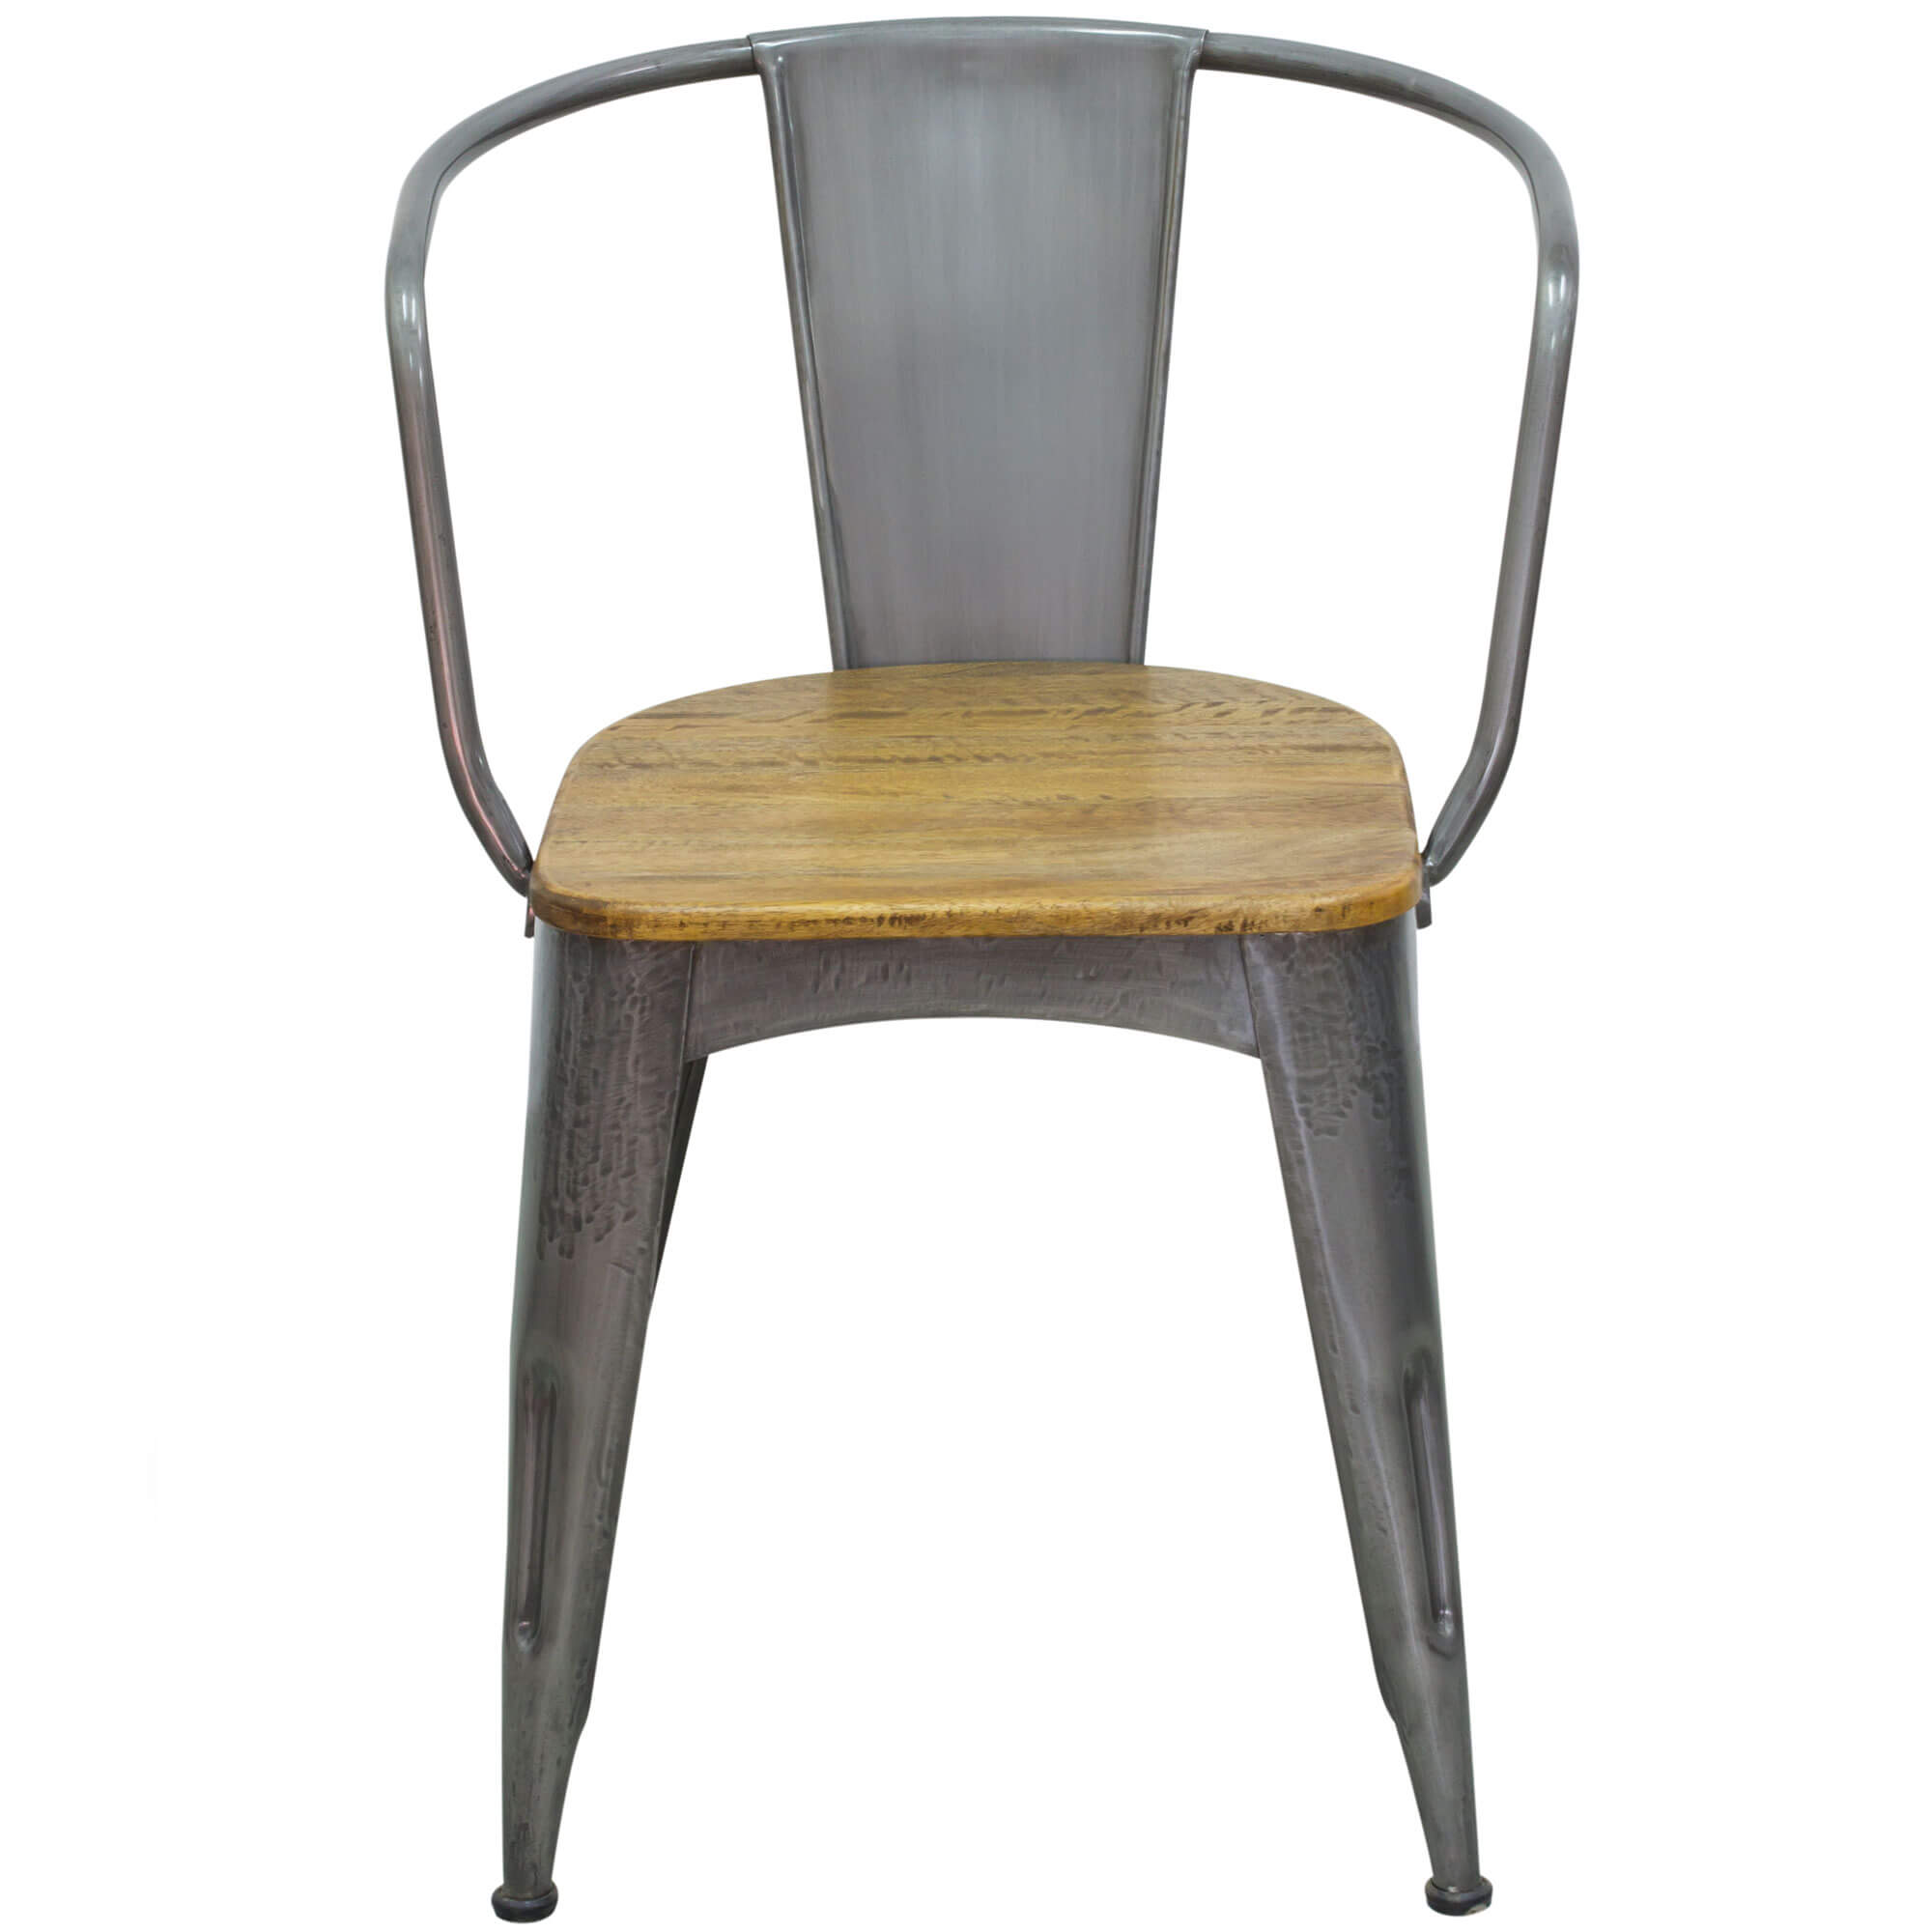 Urban Square Cafe Table x2 Chairs (70x70)